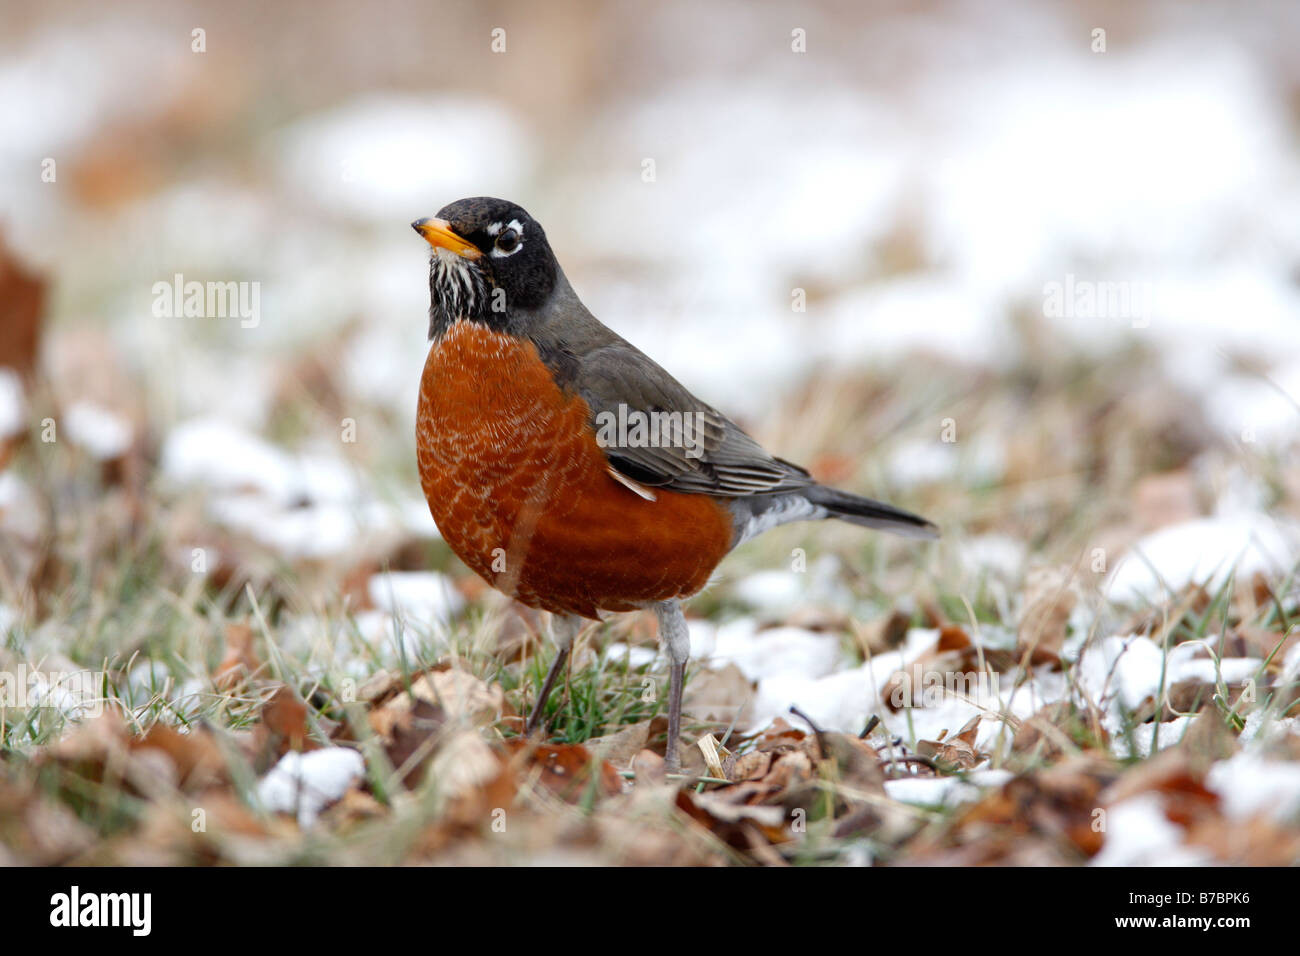 American Robin in Snow - Stock Image